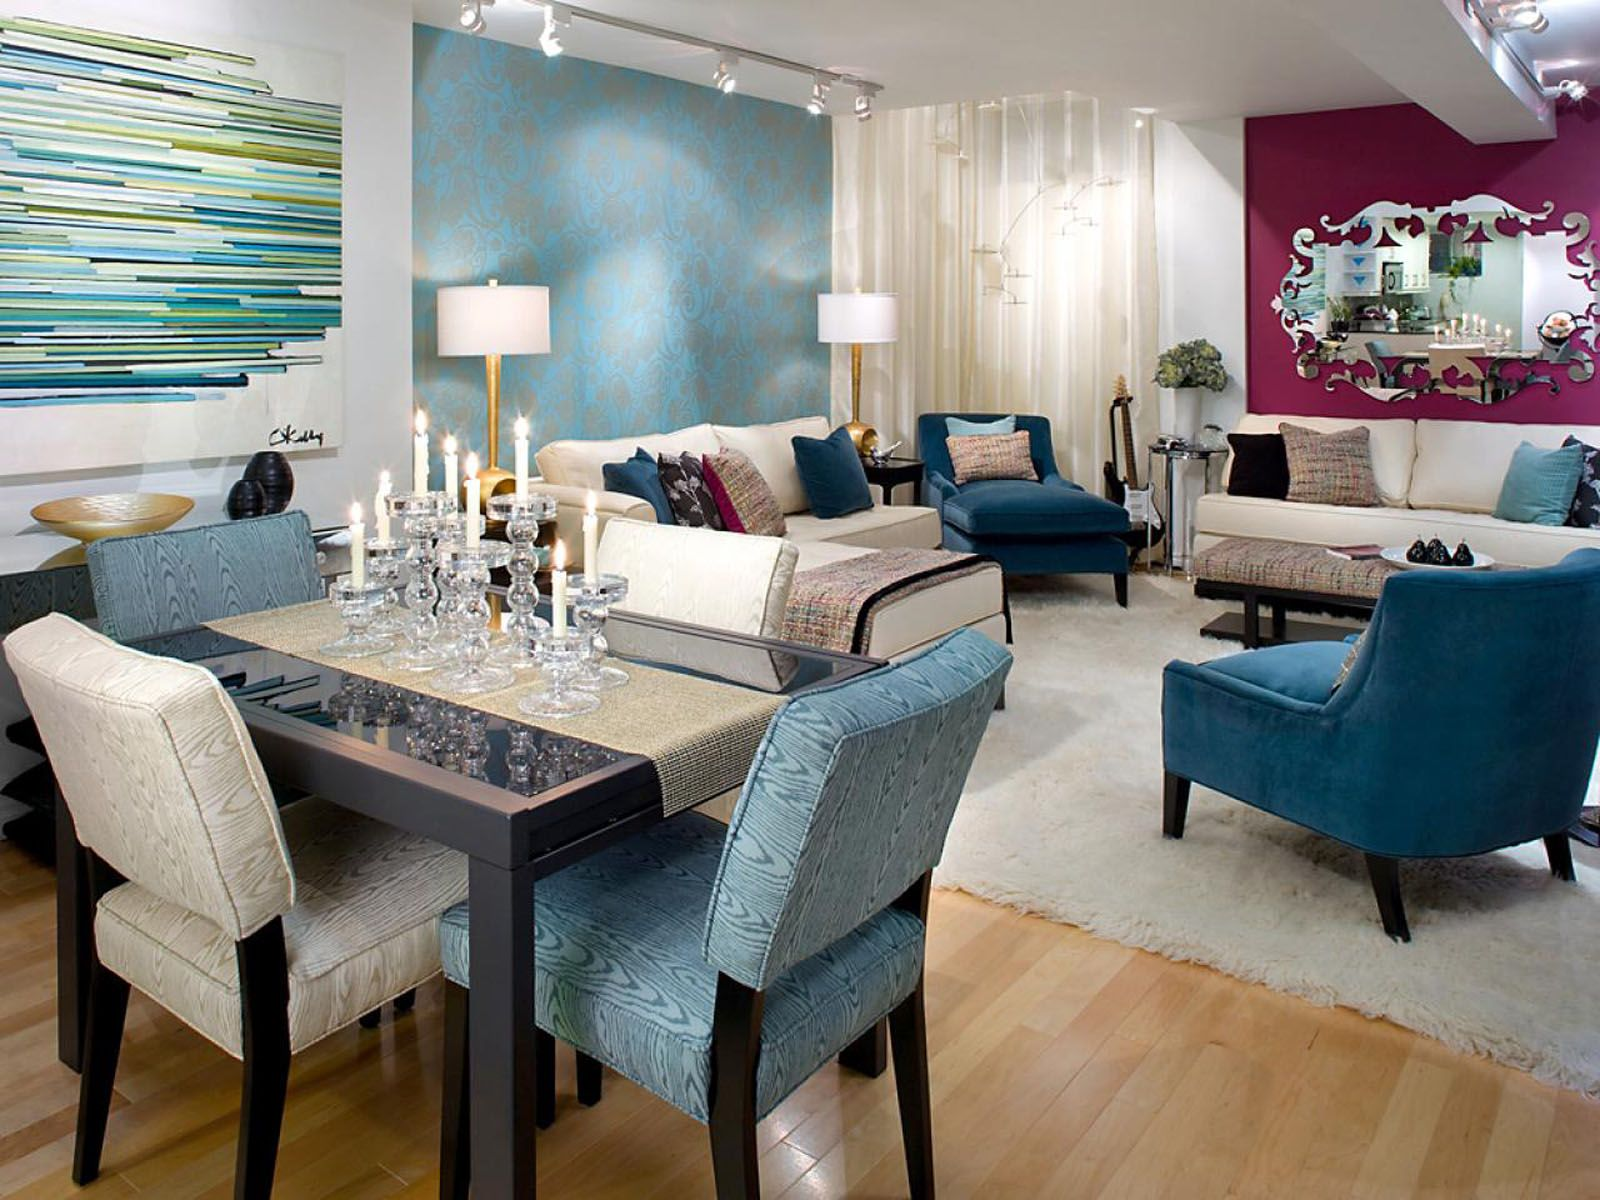 Genial Decorating Ideas For Living Room On A Low